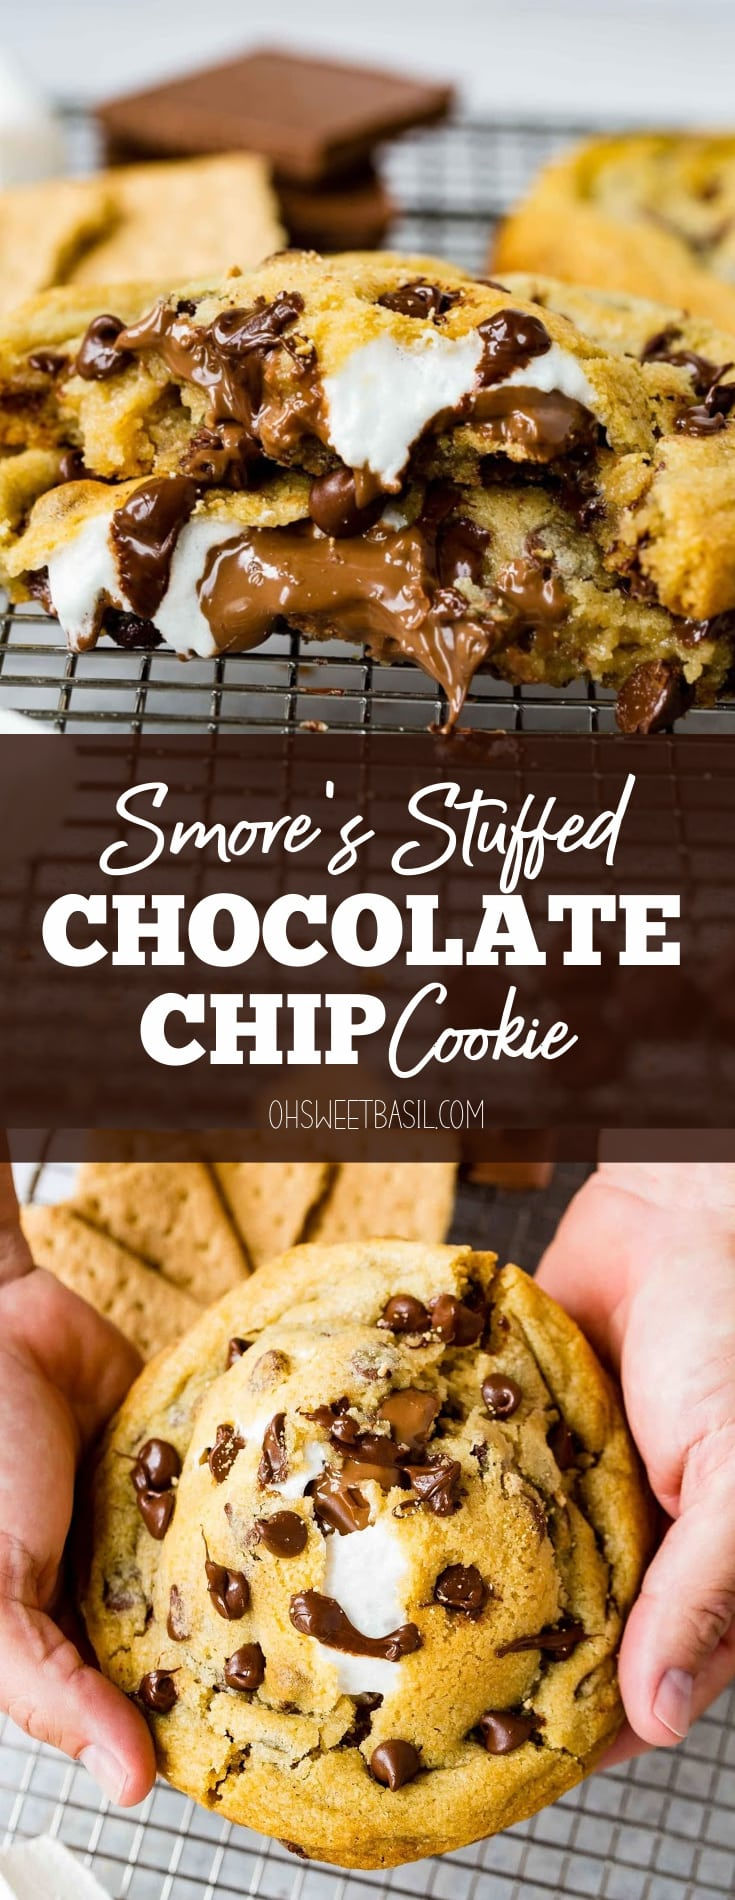 A s'mores stuffed chocolate chip cookie. The cookie is broken in half showing the chocolate, marshmallow and graham cracker inside of the chocolate chip cookie.